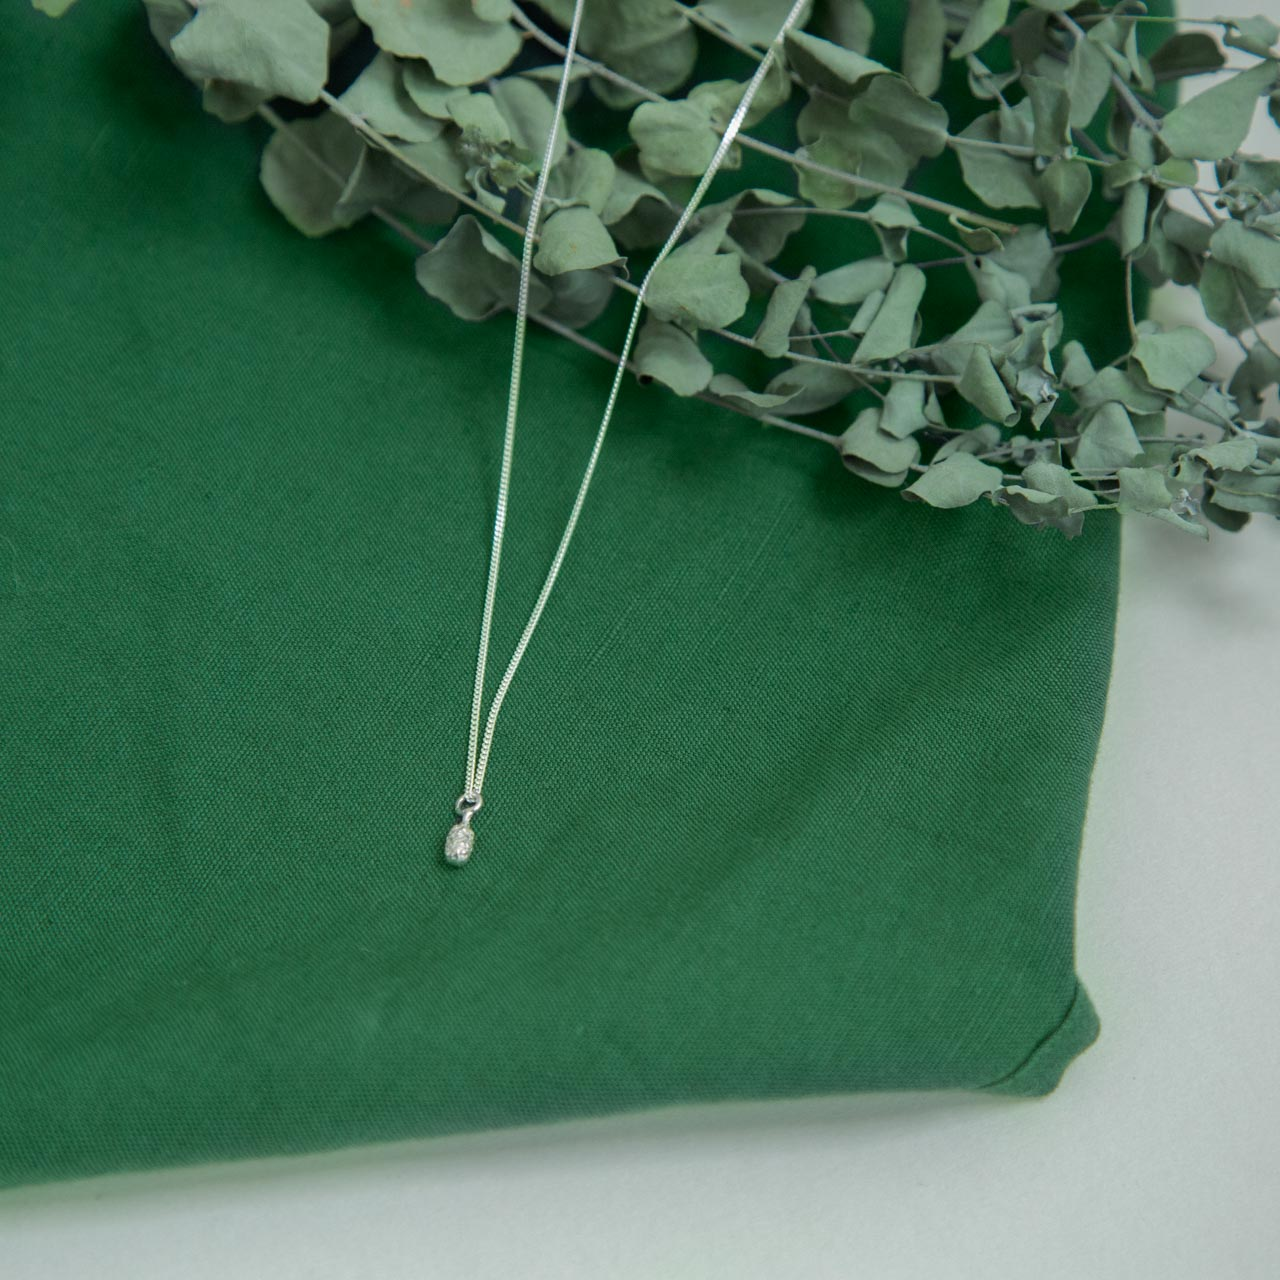 silver Spruce Drop Pendant on green cloth near dried flora